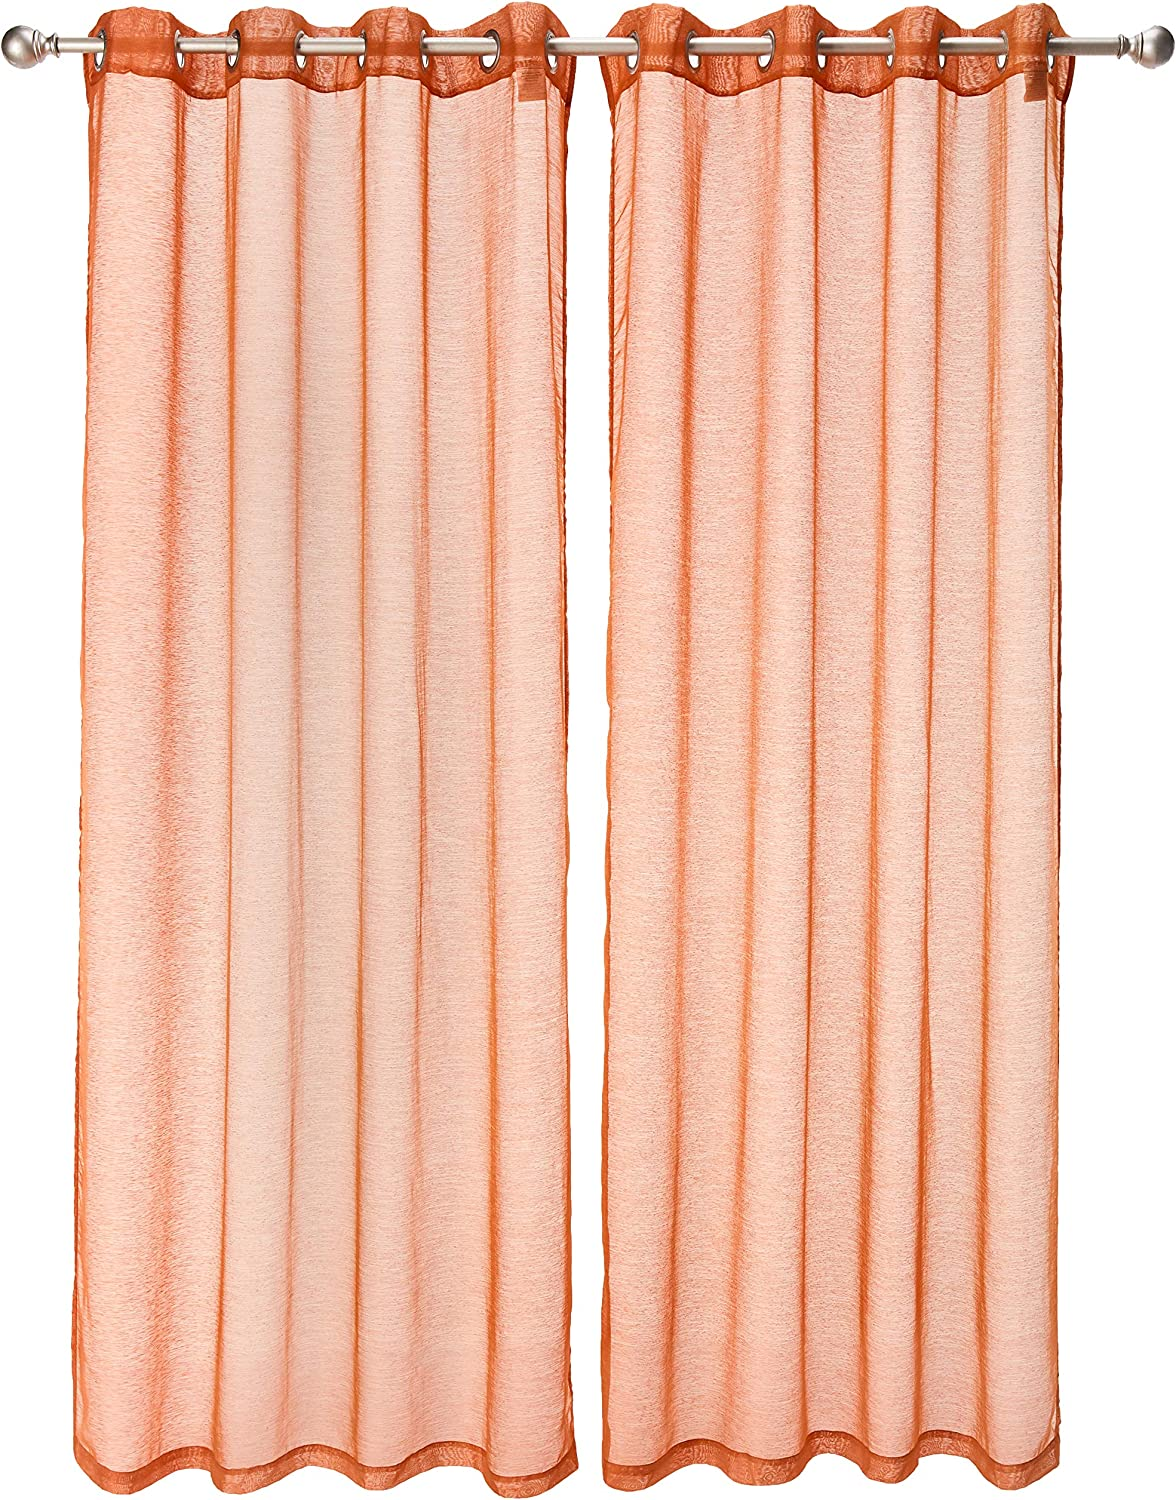 "Dainty Home Malibu Textured Semi-Sheer Linen Look Grommet Top Curtain Panel Pair, 54"" x 84"" each (108"" x 84"" total), Rust Spice"